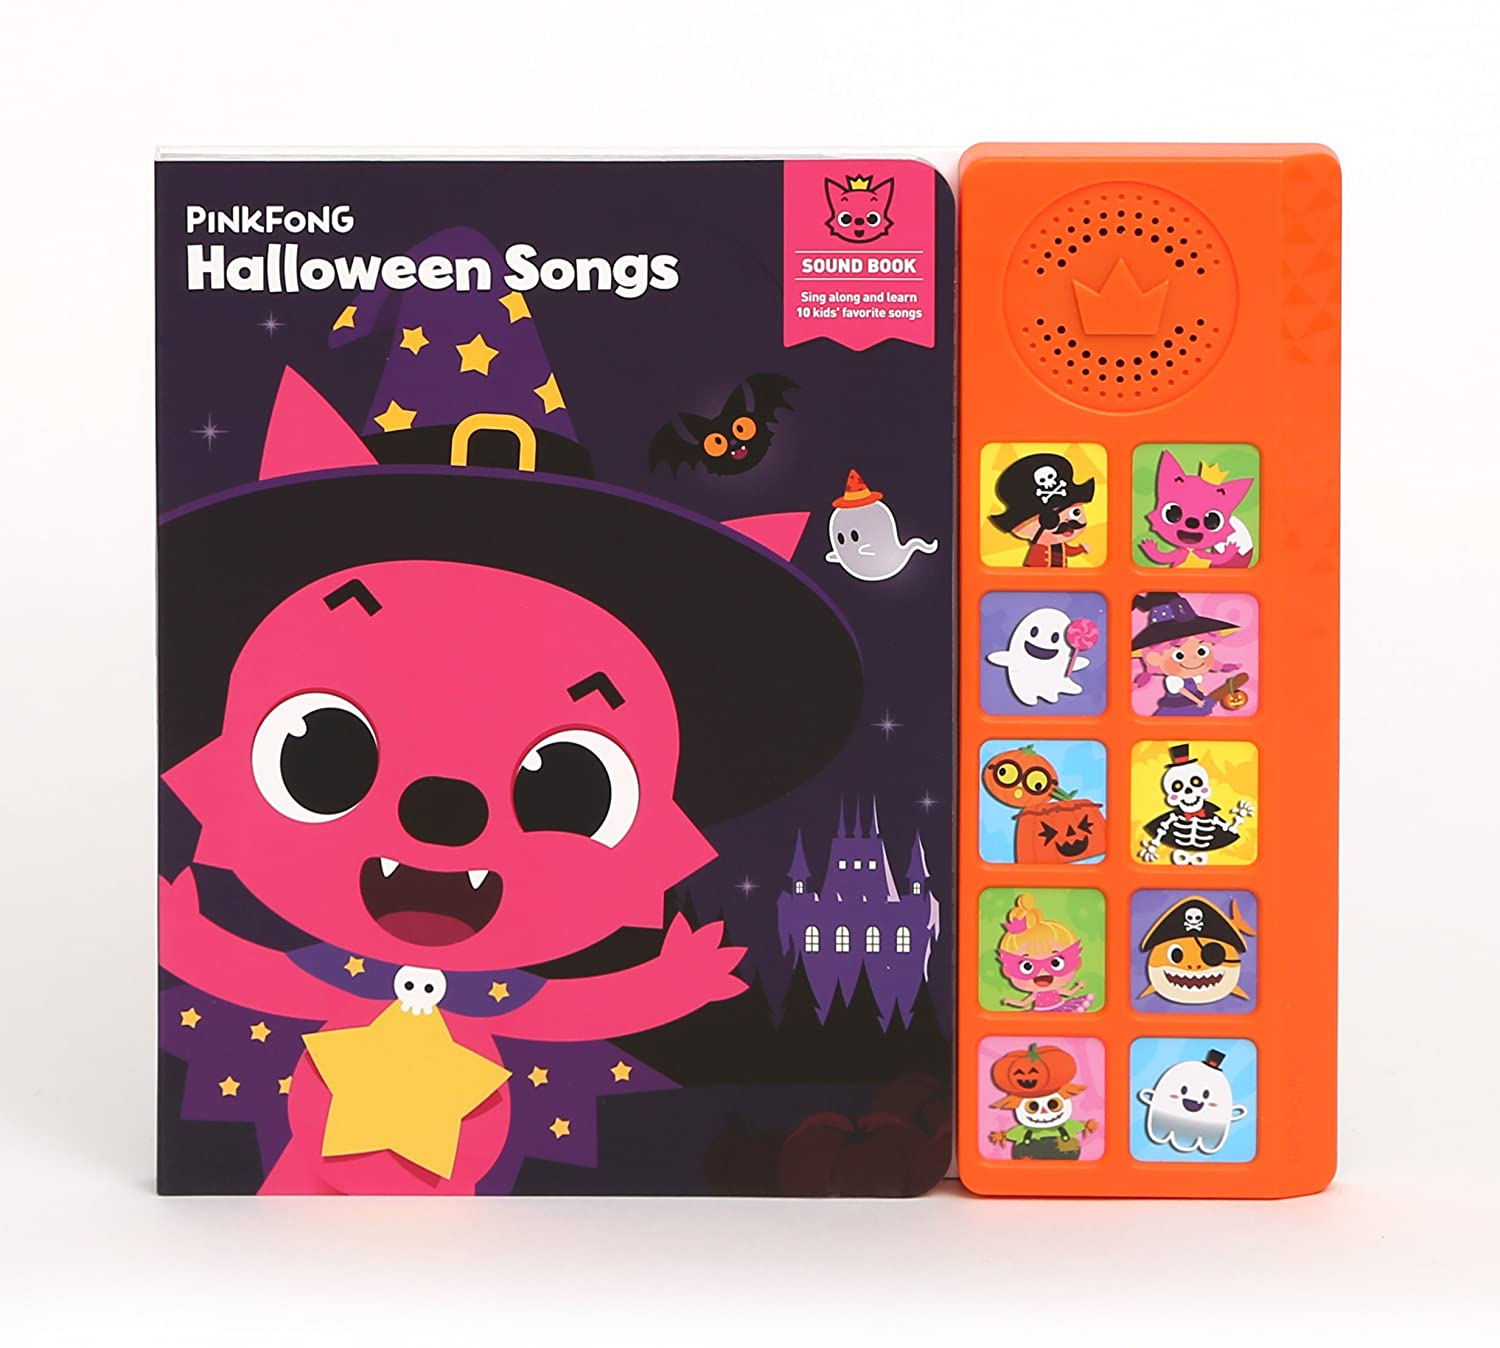 Amazon.com: Pinkfong Children's Halloween Songs Sound Book, Purple ...